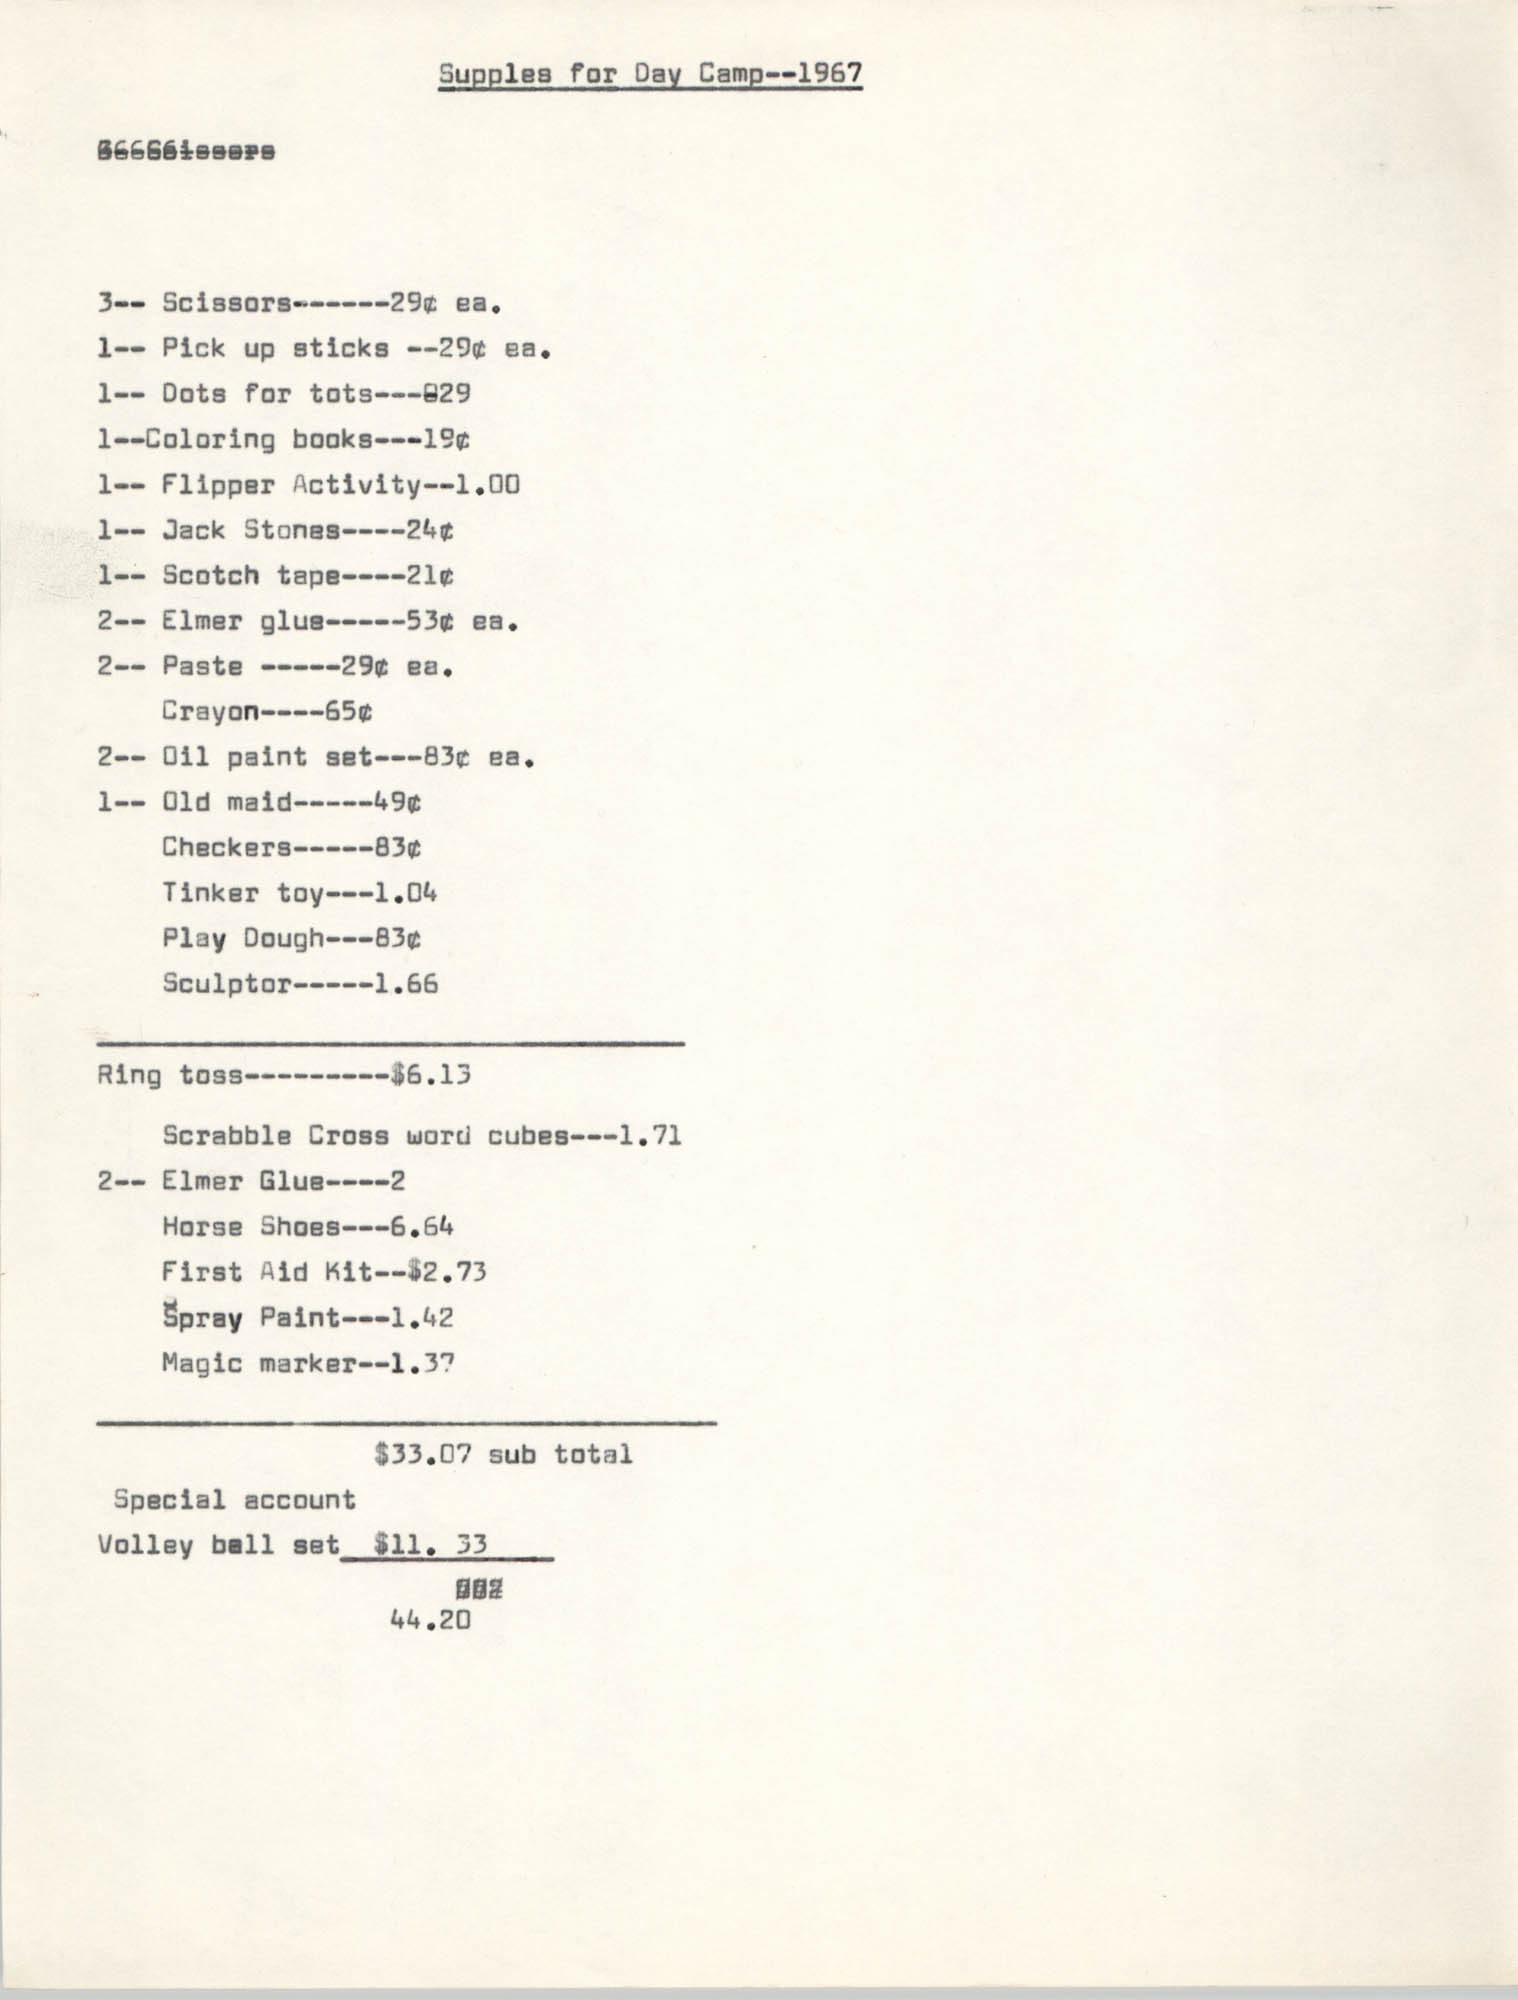 Coming Street Y.W.C.A. Day Camp 1967, Supplies List